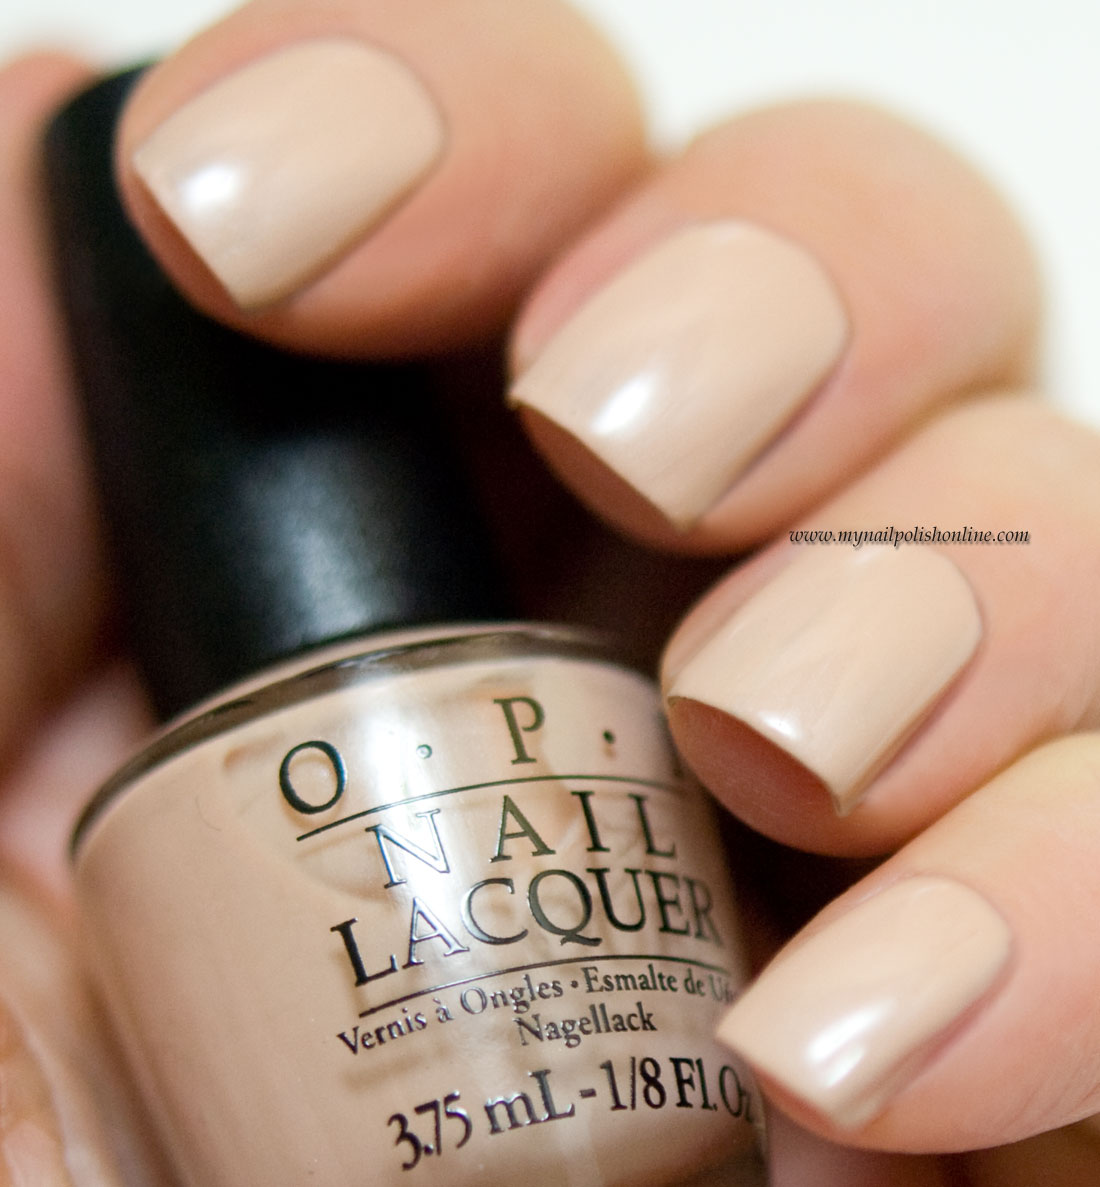 OPI - Pale to Chief